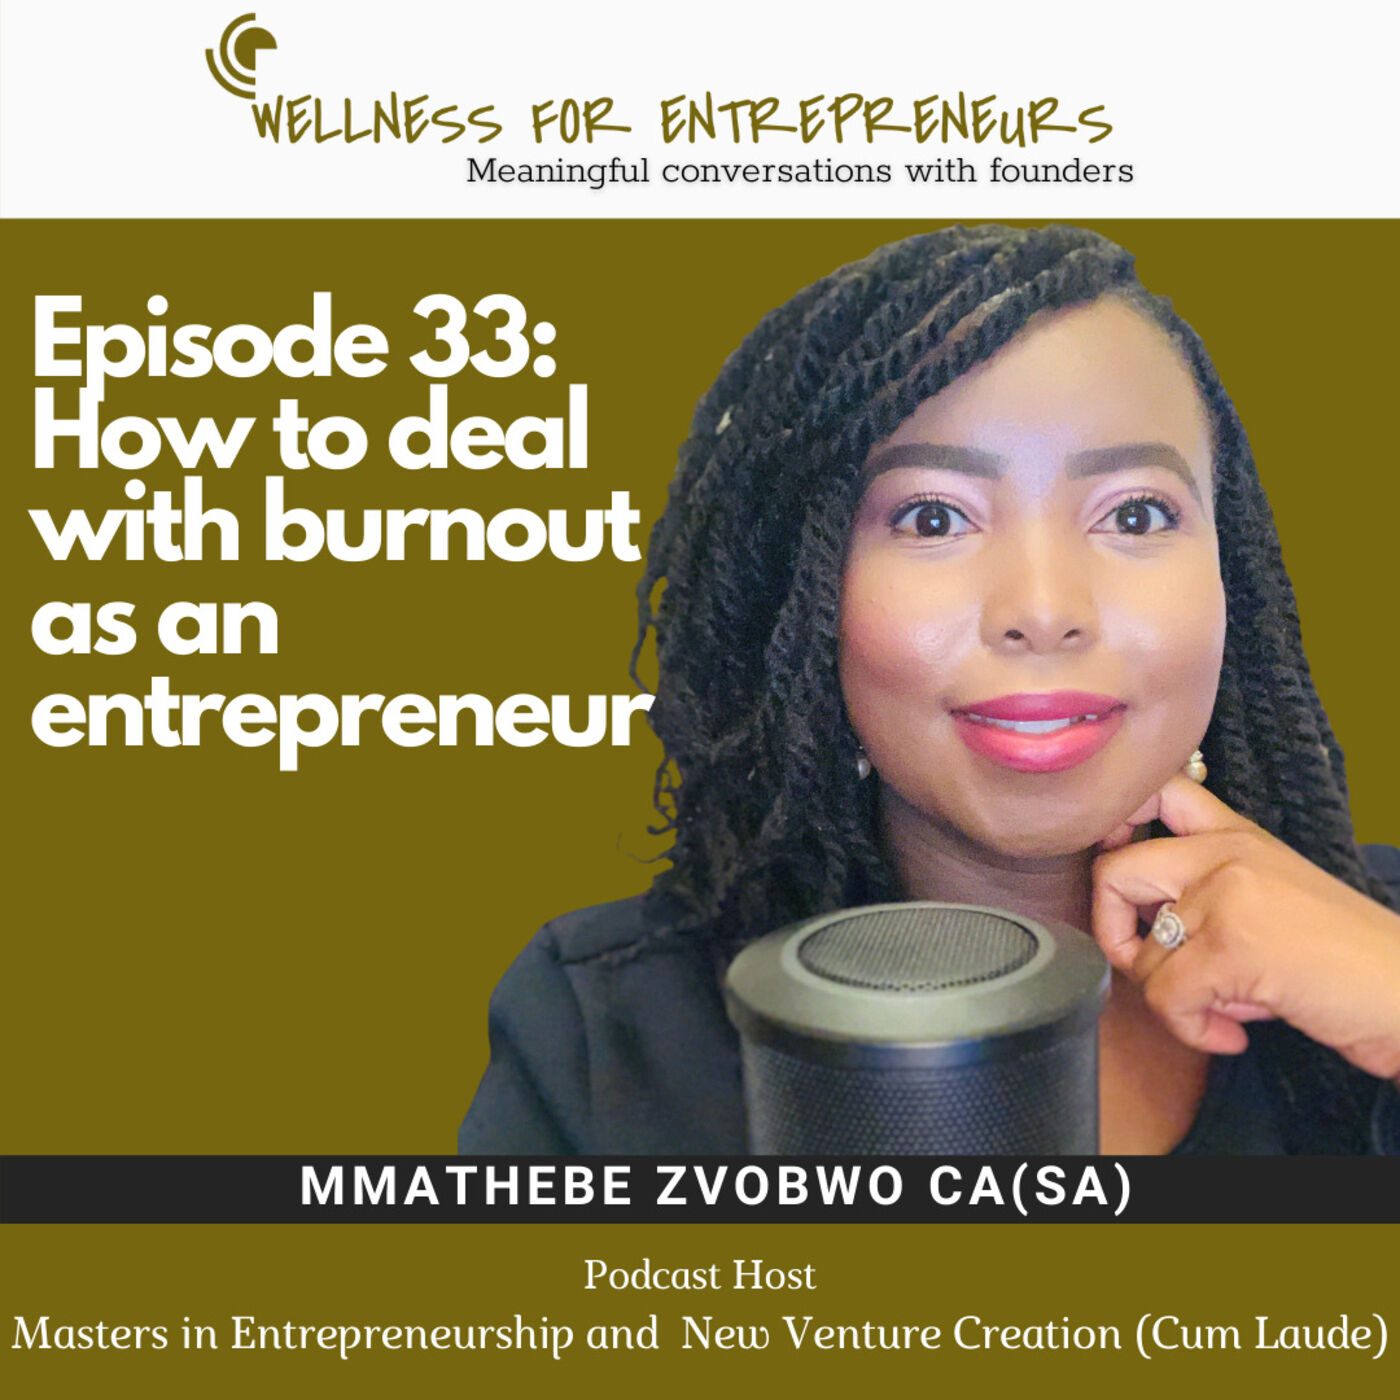 Episode 33: How to deal with burnout as an entrepreneur